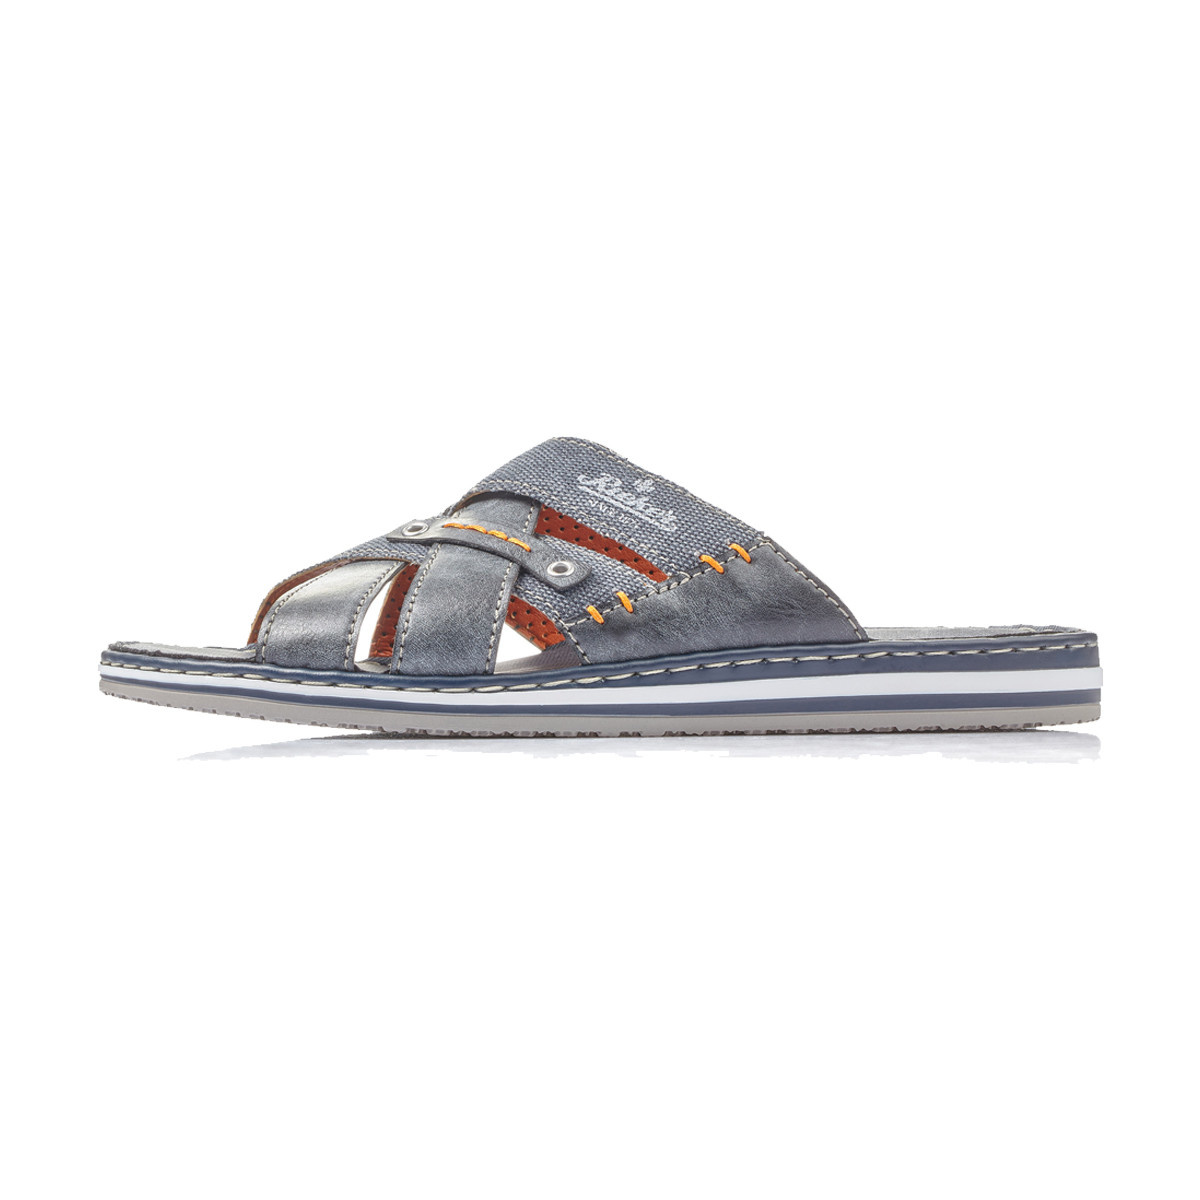 Rieker Rieker Men's Slide 21599-14 Denim